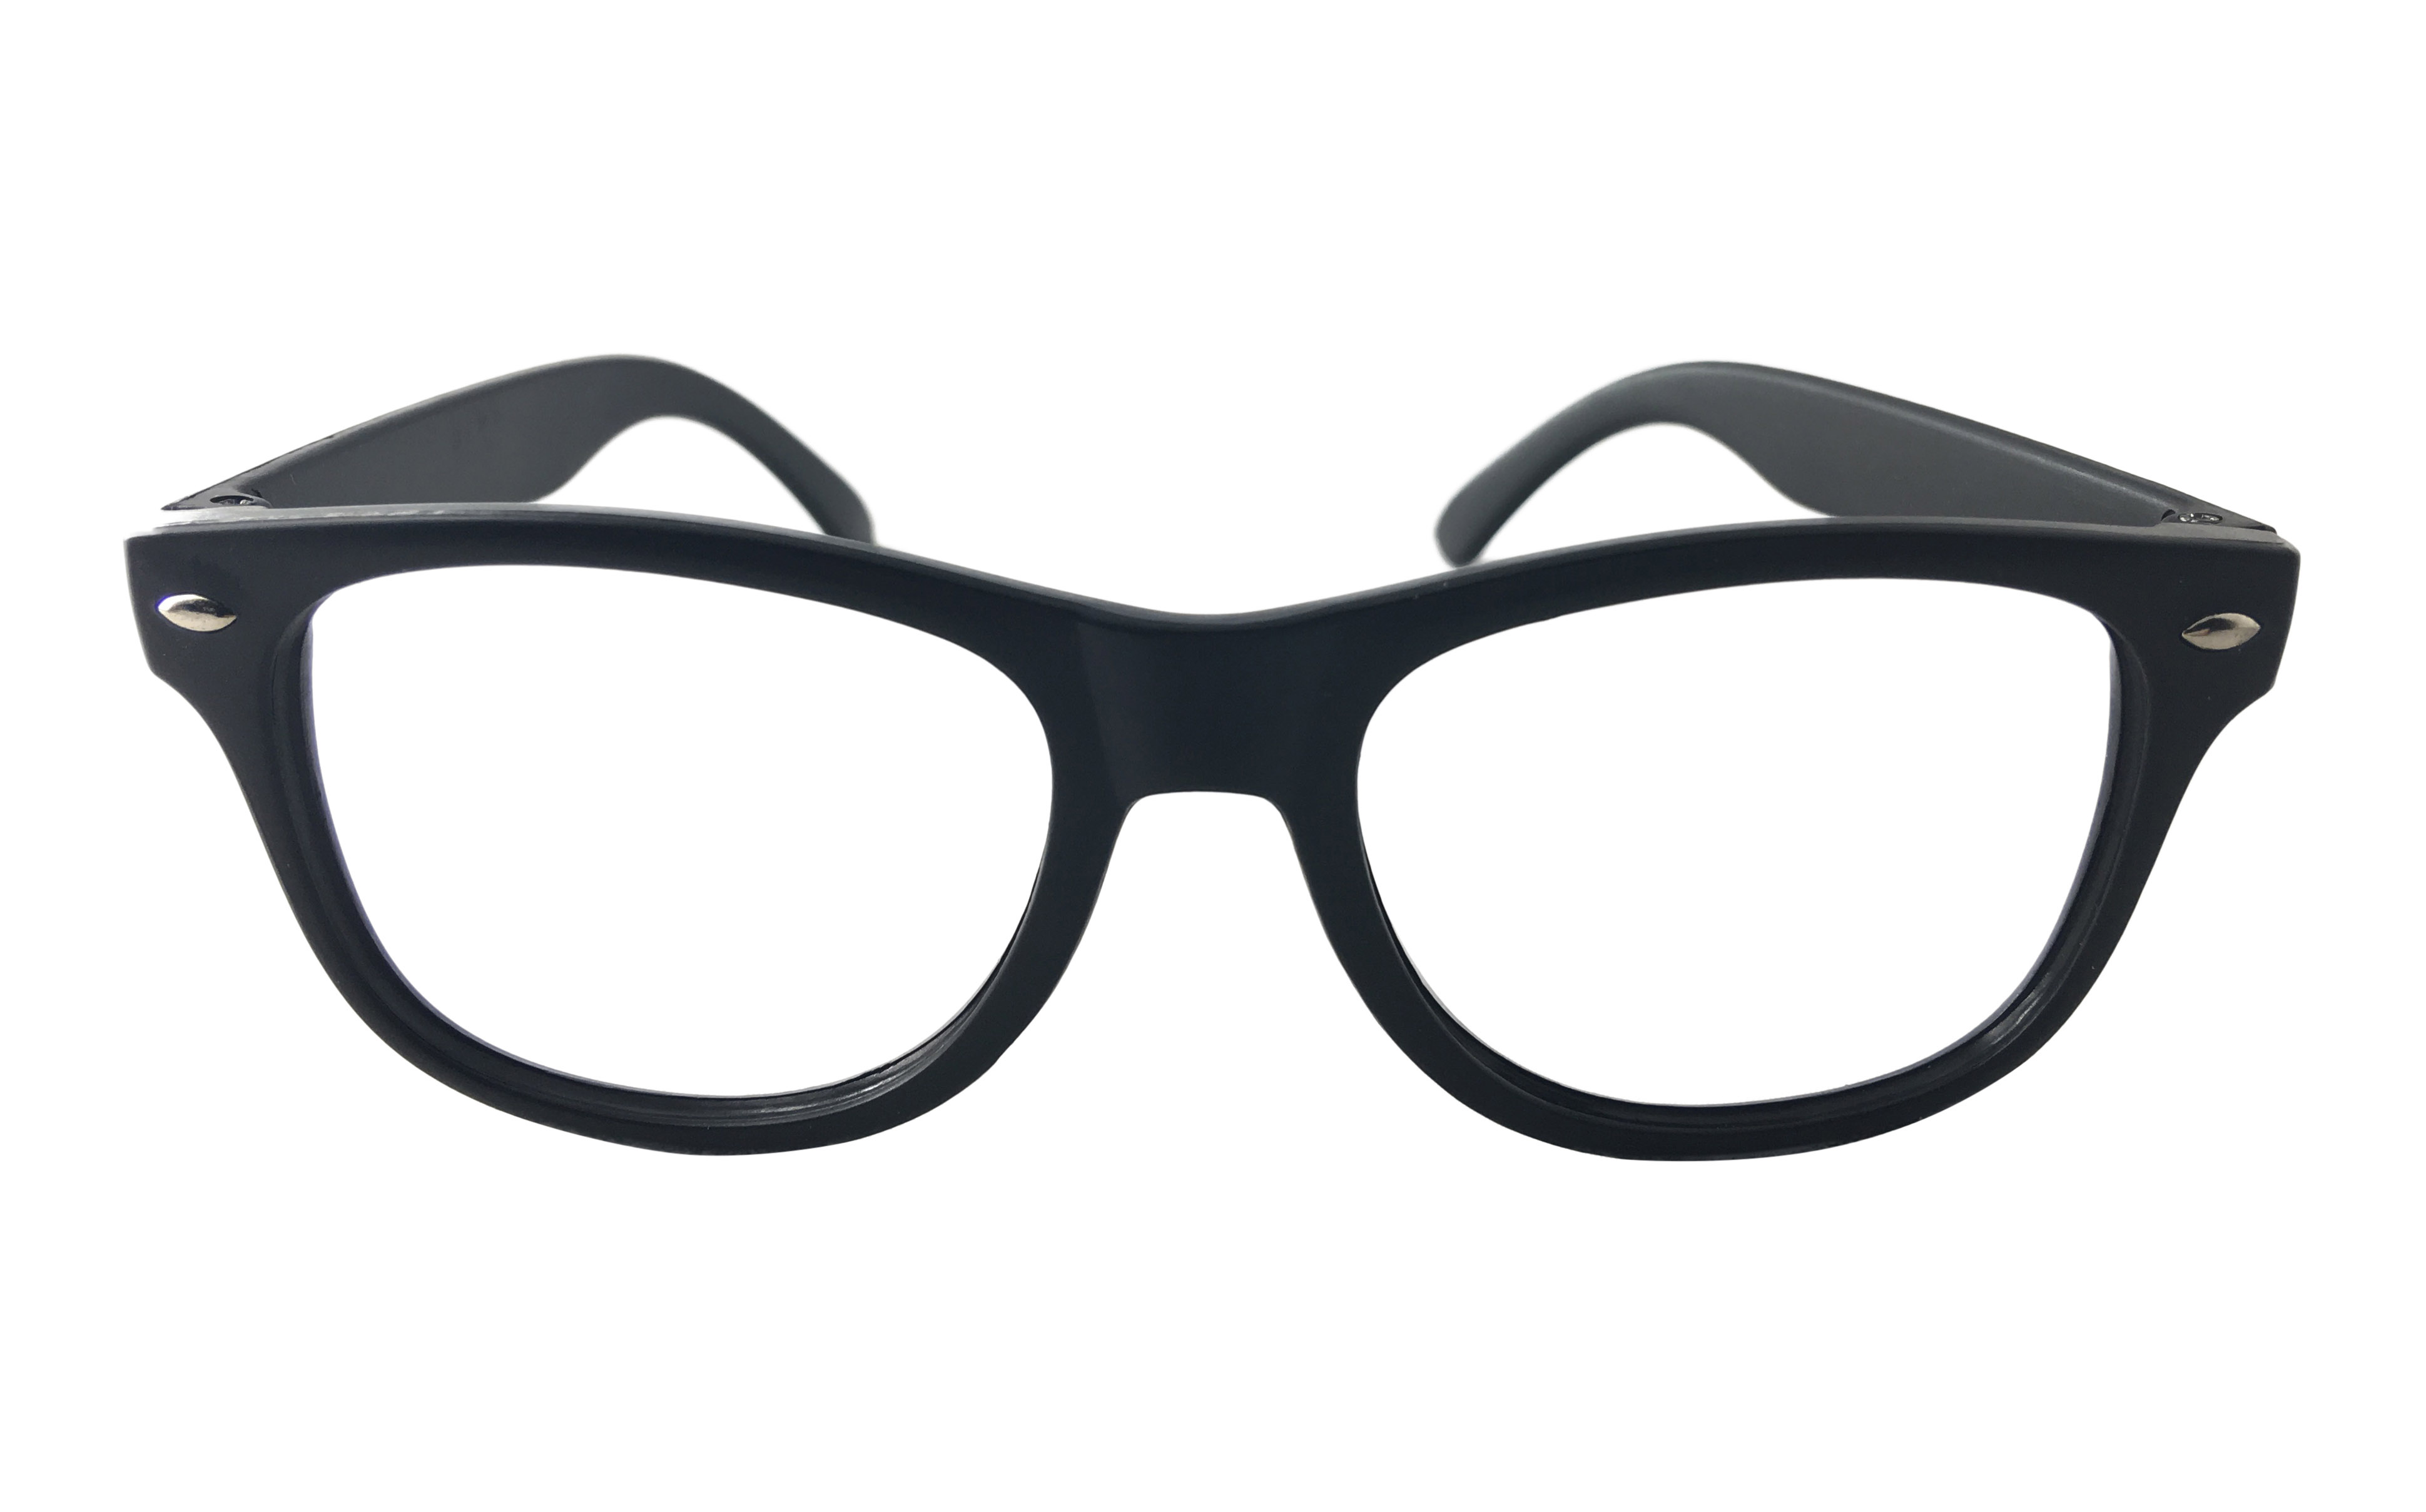 No glasses - Design nr. 3292